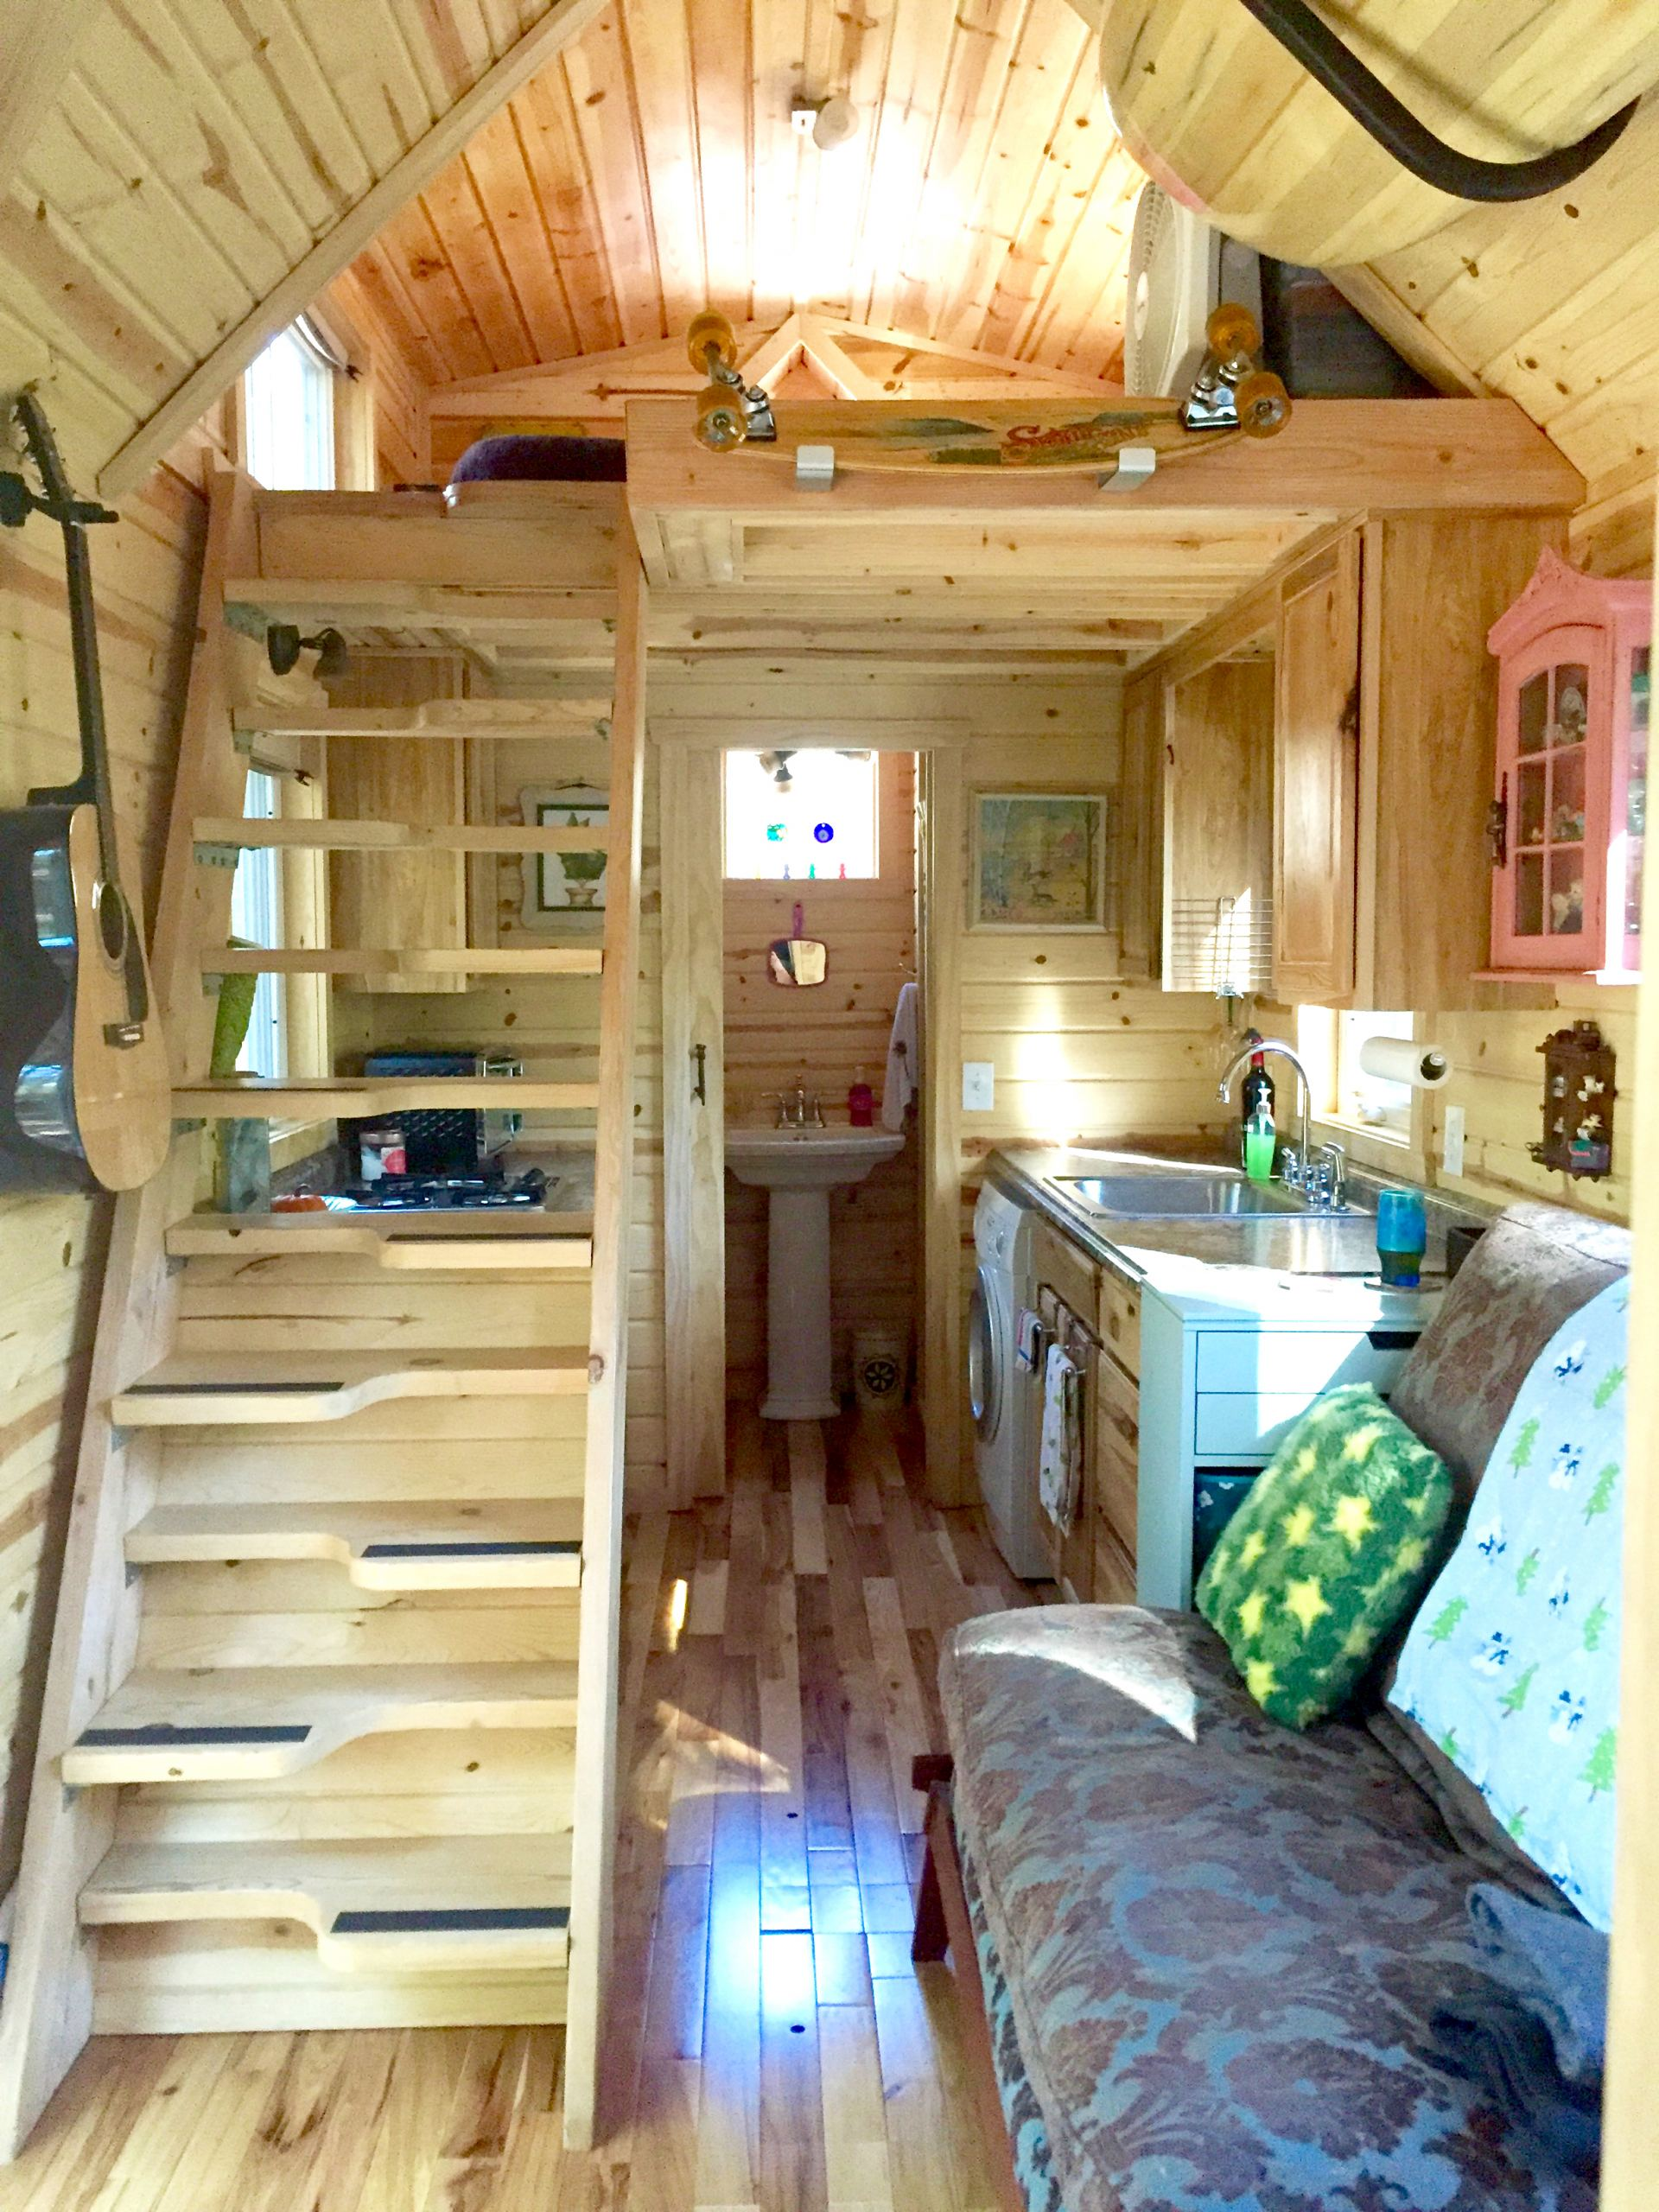 nickis colorful victorian tiny house after one year - Tiny House Inside